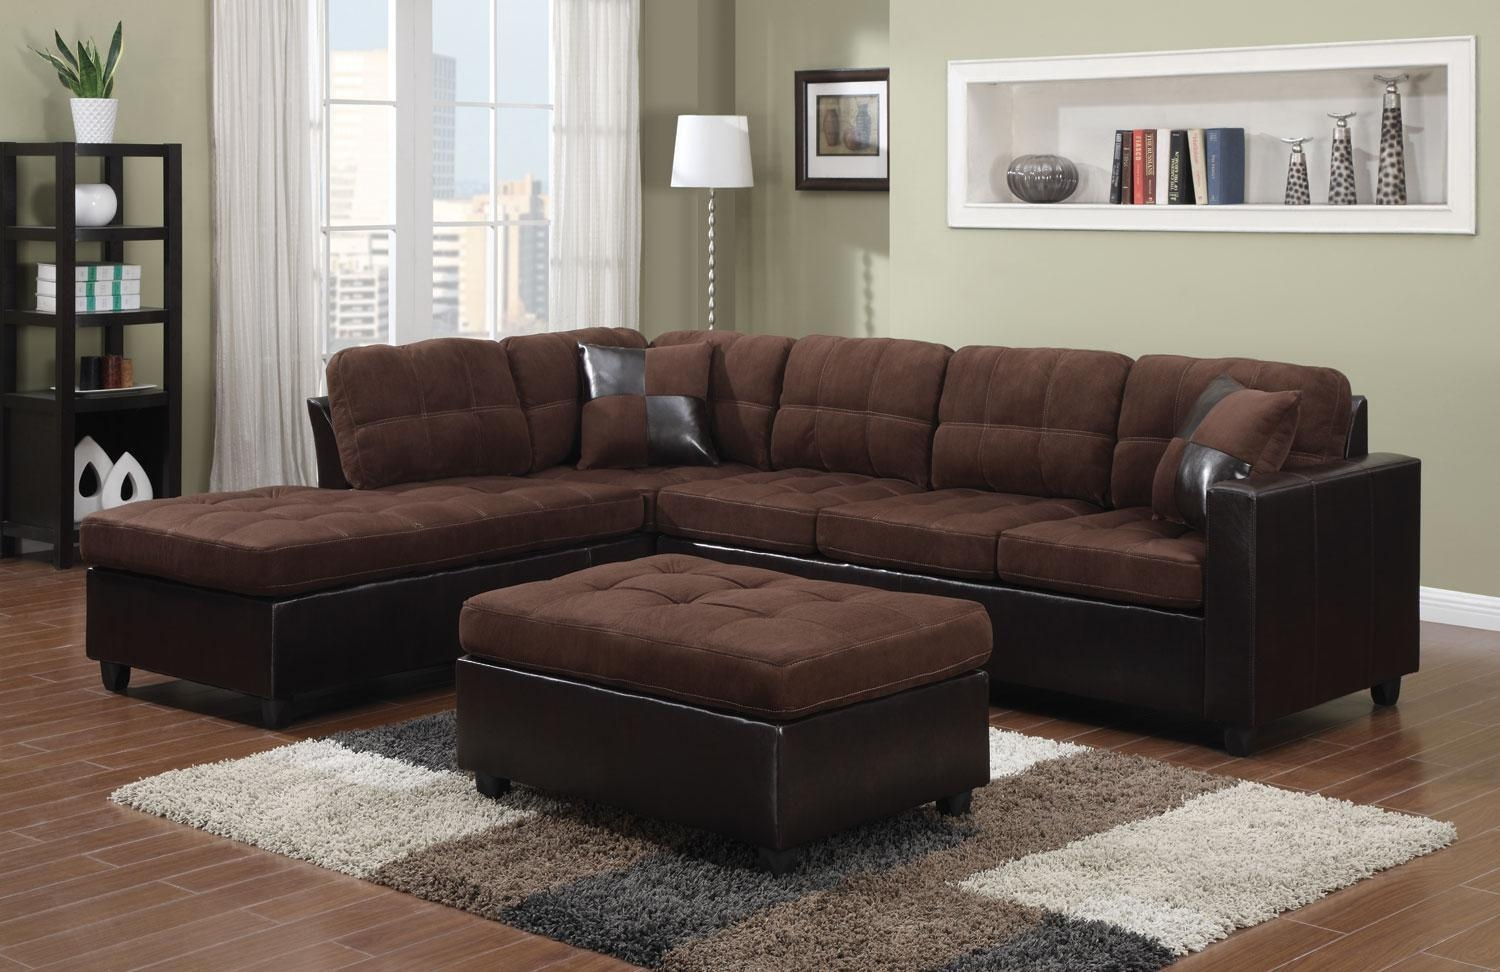 Living Room: Leather Suede Sectional Sofa | Coaster Sectional With Tufted Sectional Sofa With Chaise (Image 8 of 20)